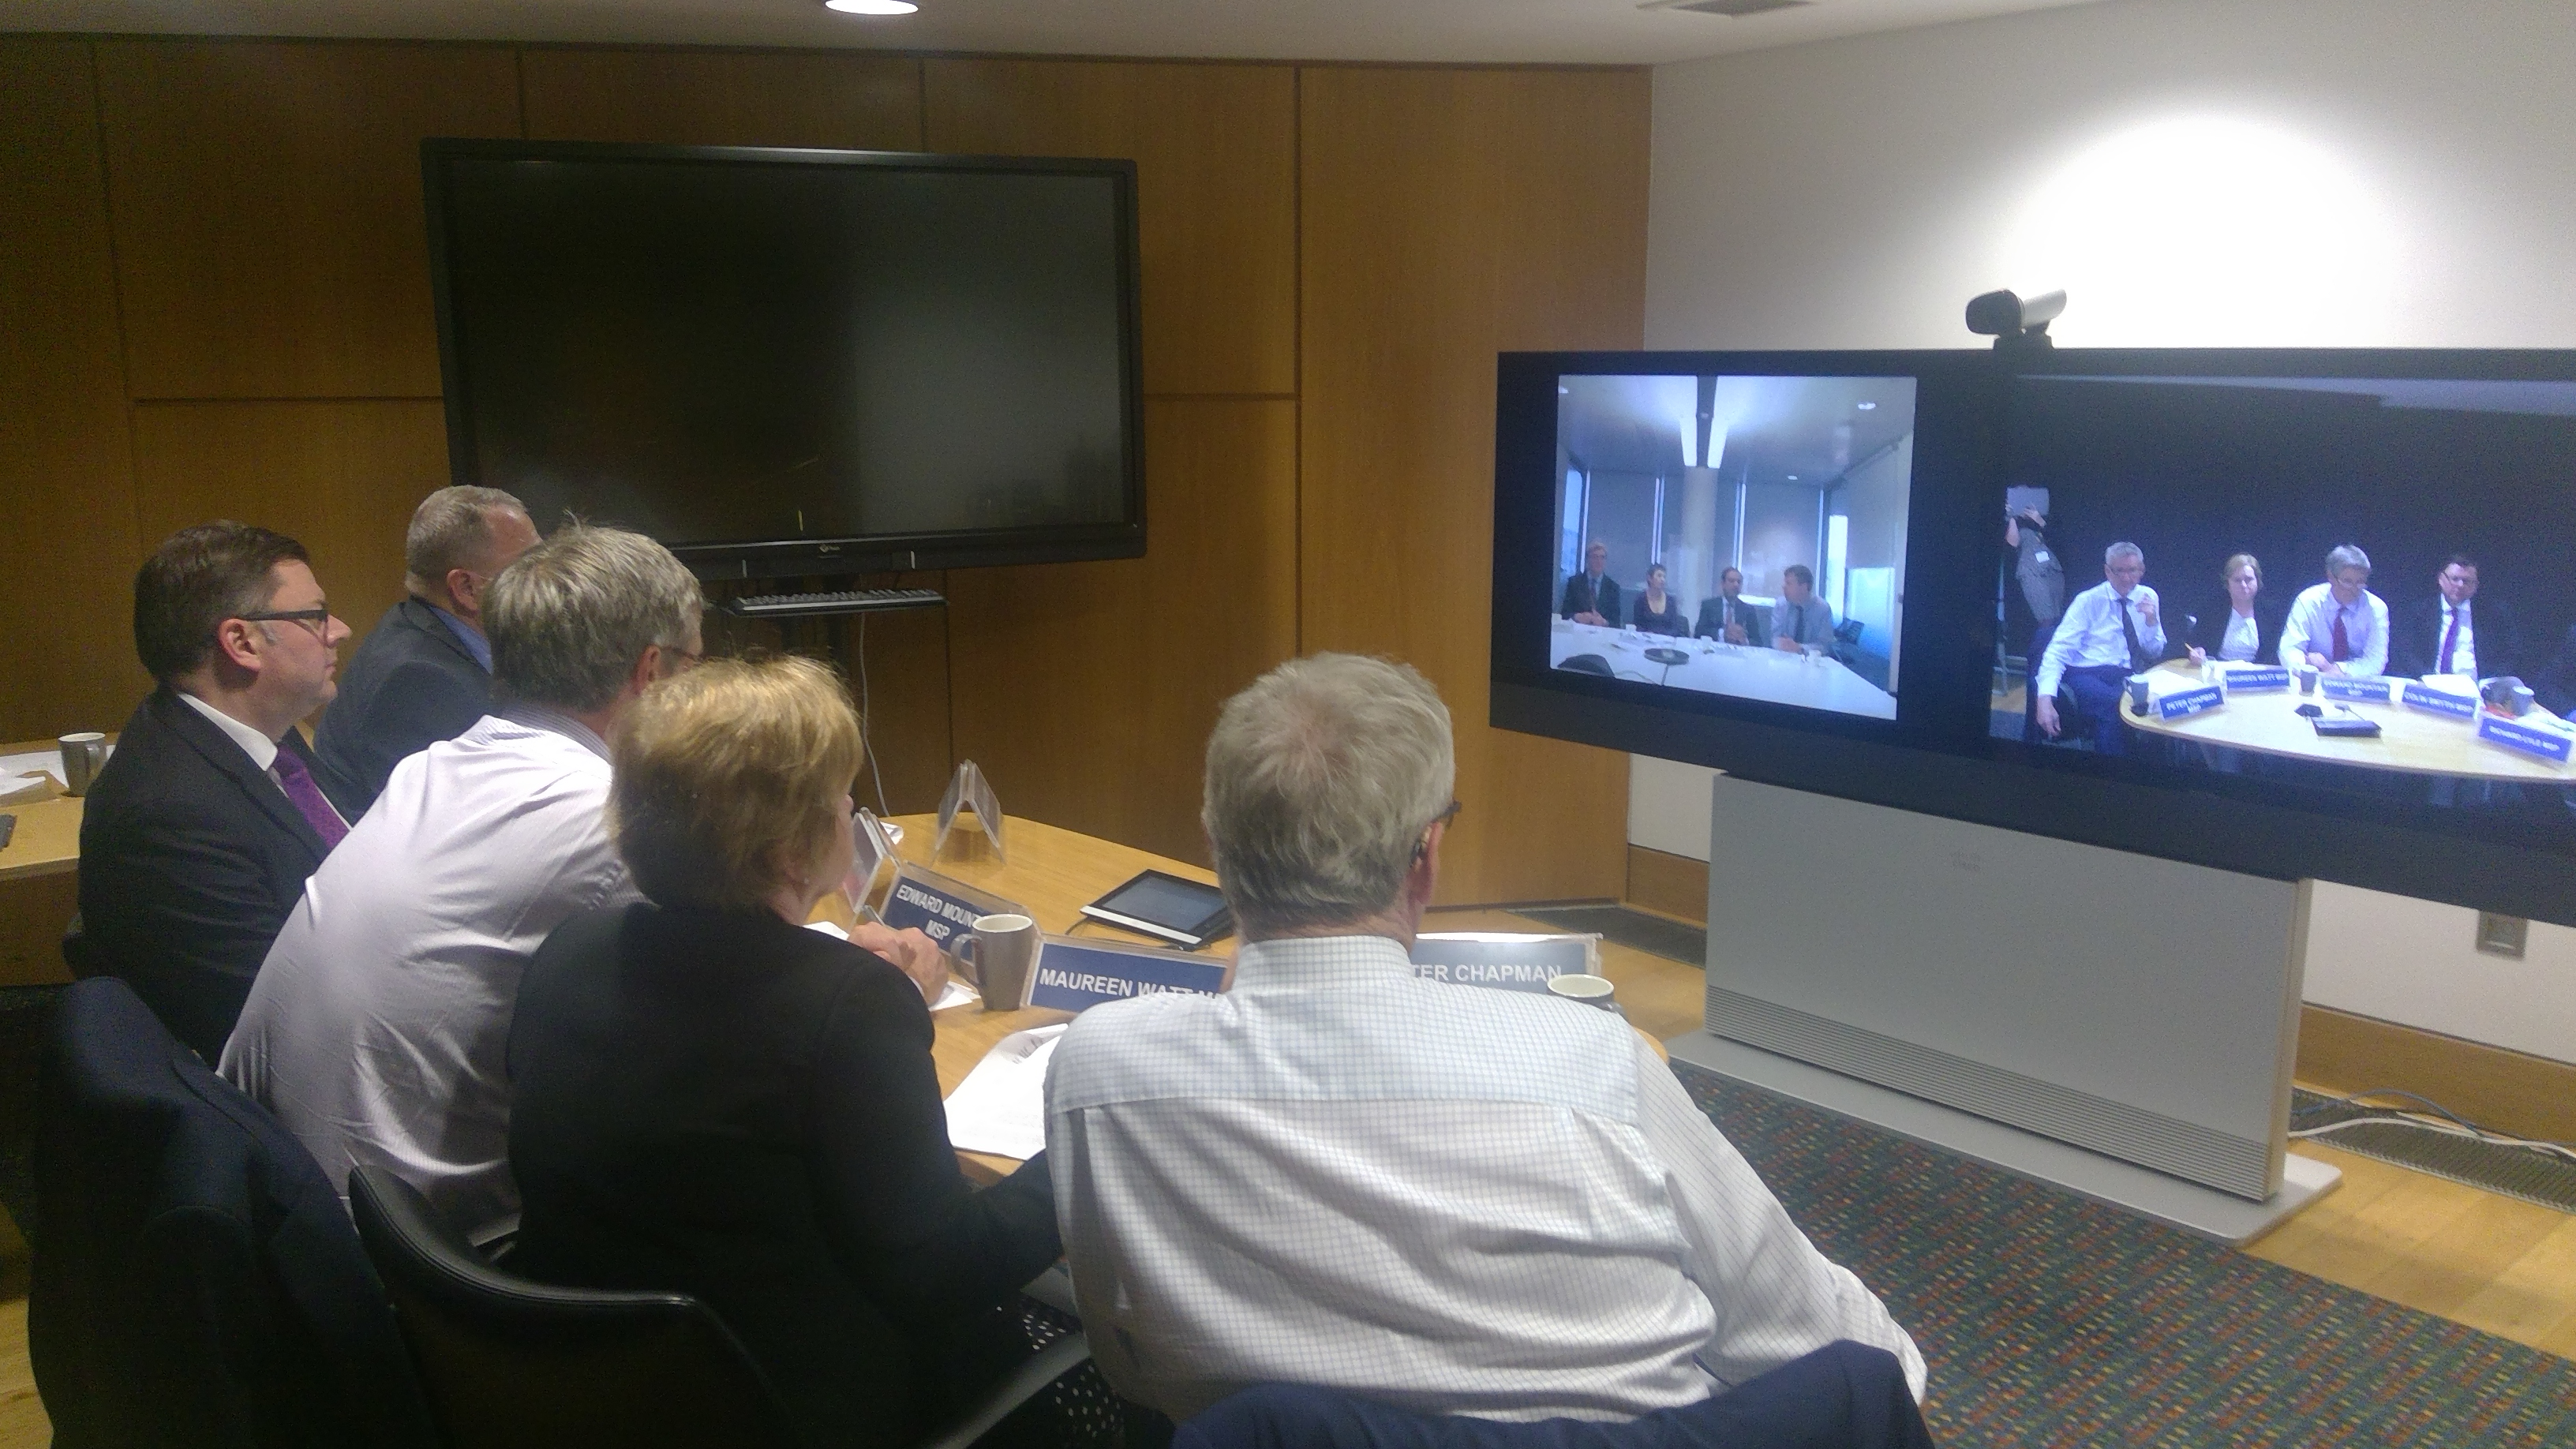 Richard Lyle MSP, Colin Smyth MSP, Edward Mountain MSP, Maureen Watt MSP and Peter Chapman MSP speak with London transport stakeholders via video conference